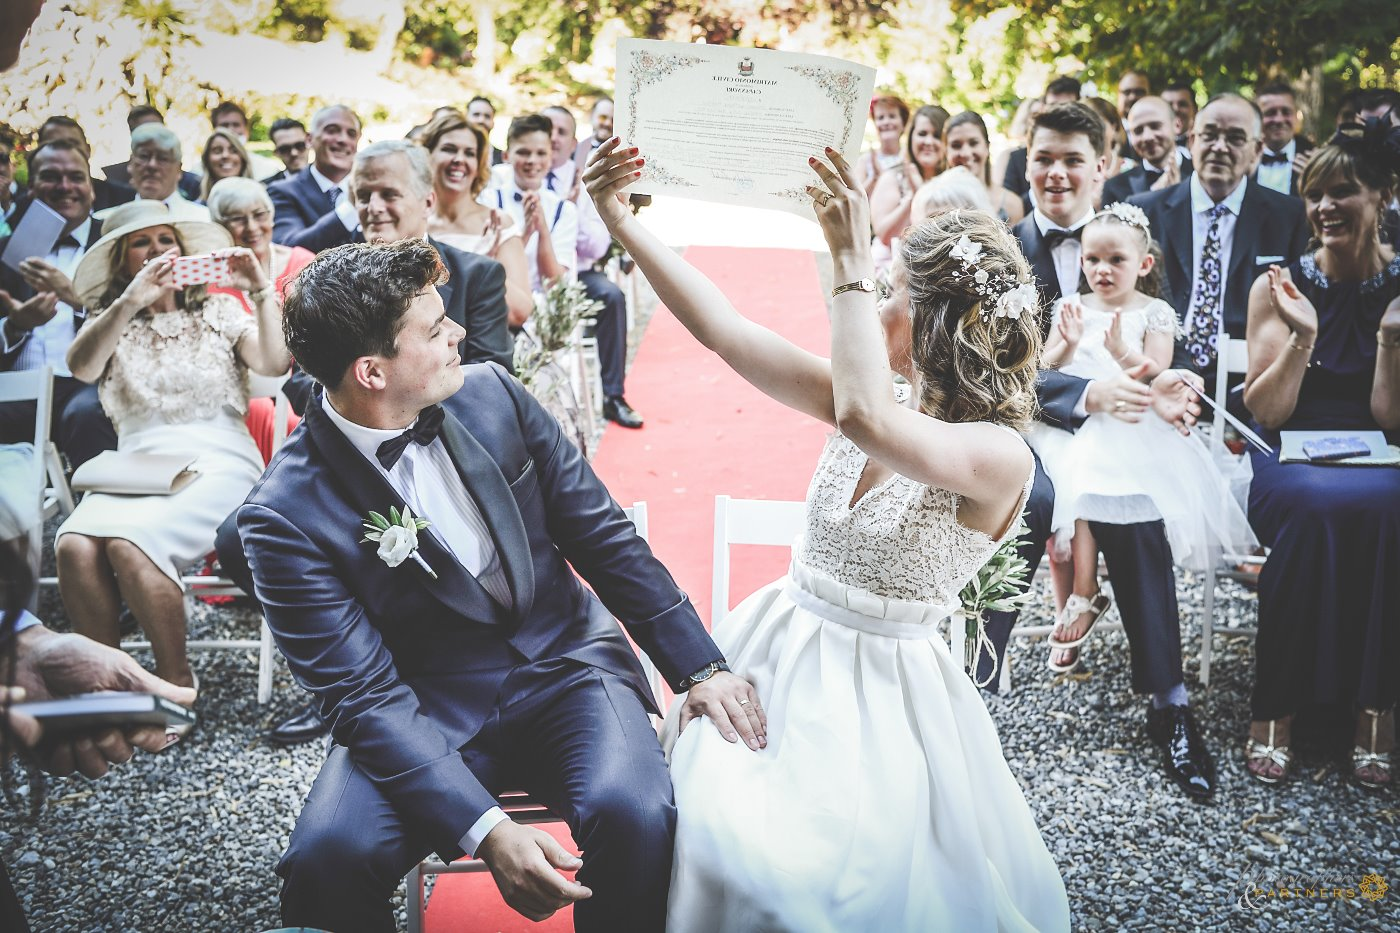 wedding_photos_fattoria_mansi_bernardini_07.jpg